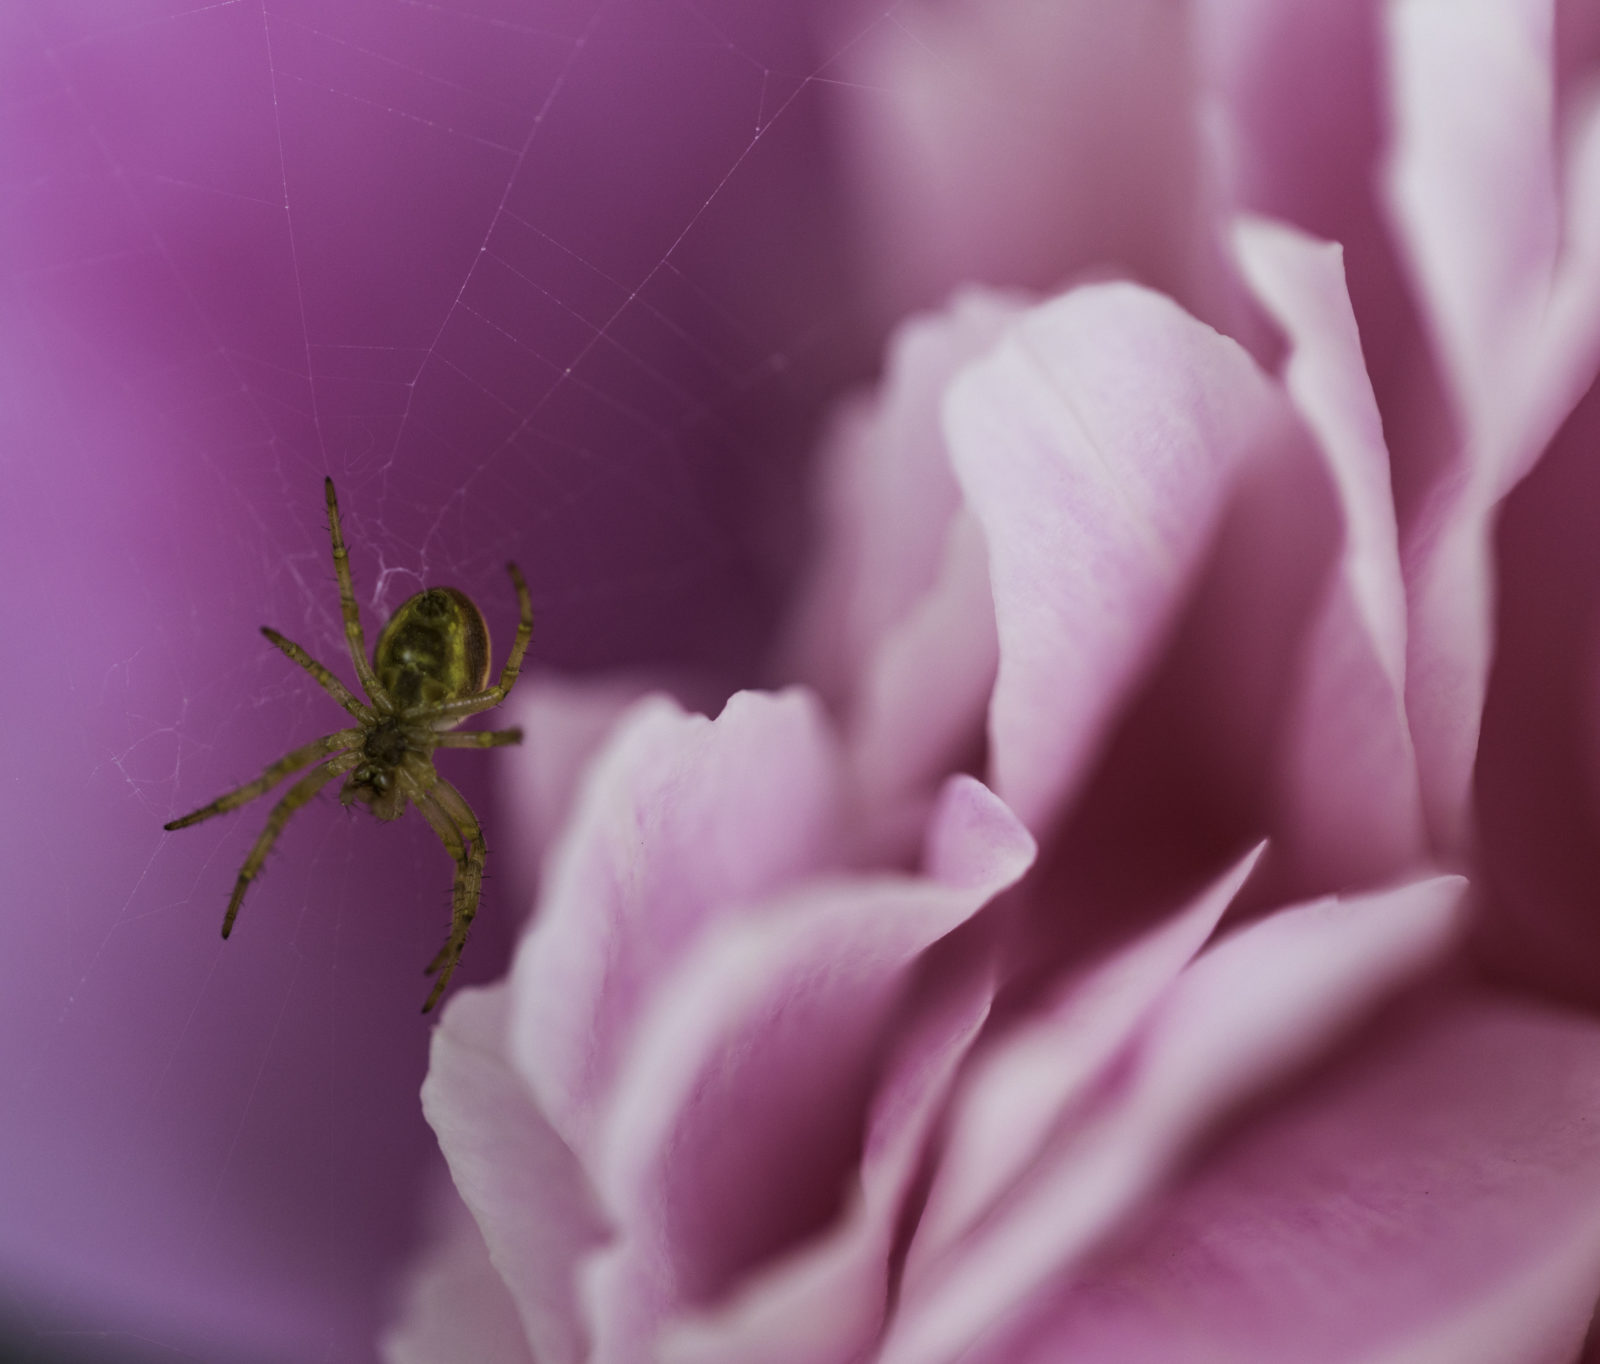 The Spider and the Peony